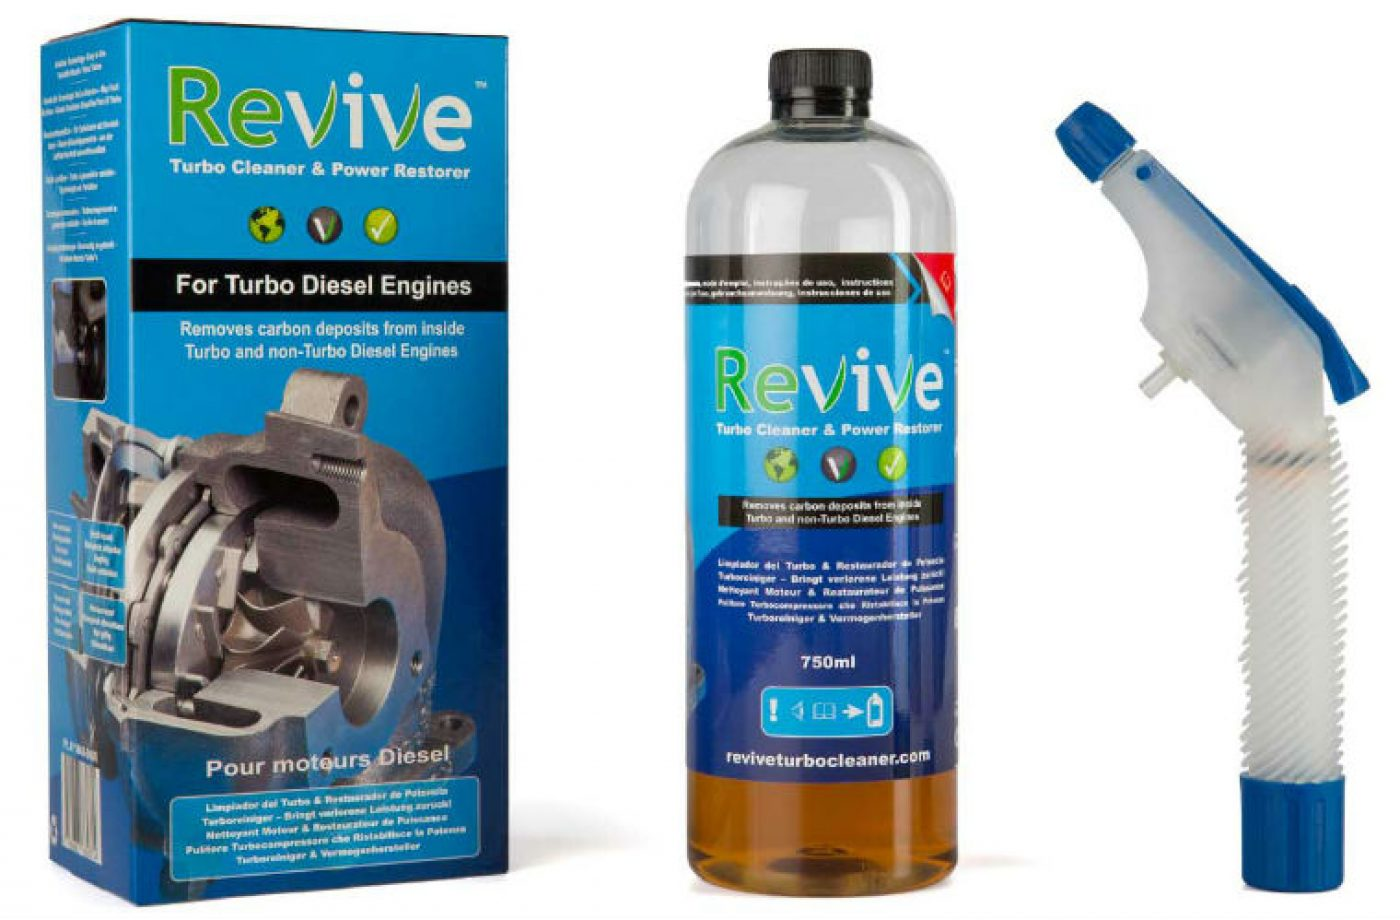 Review this turbo cleaner and have your say on how it performs